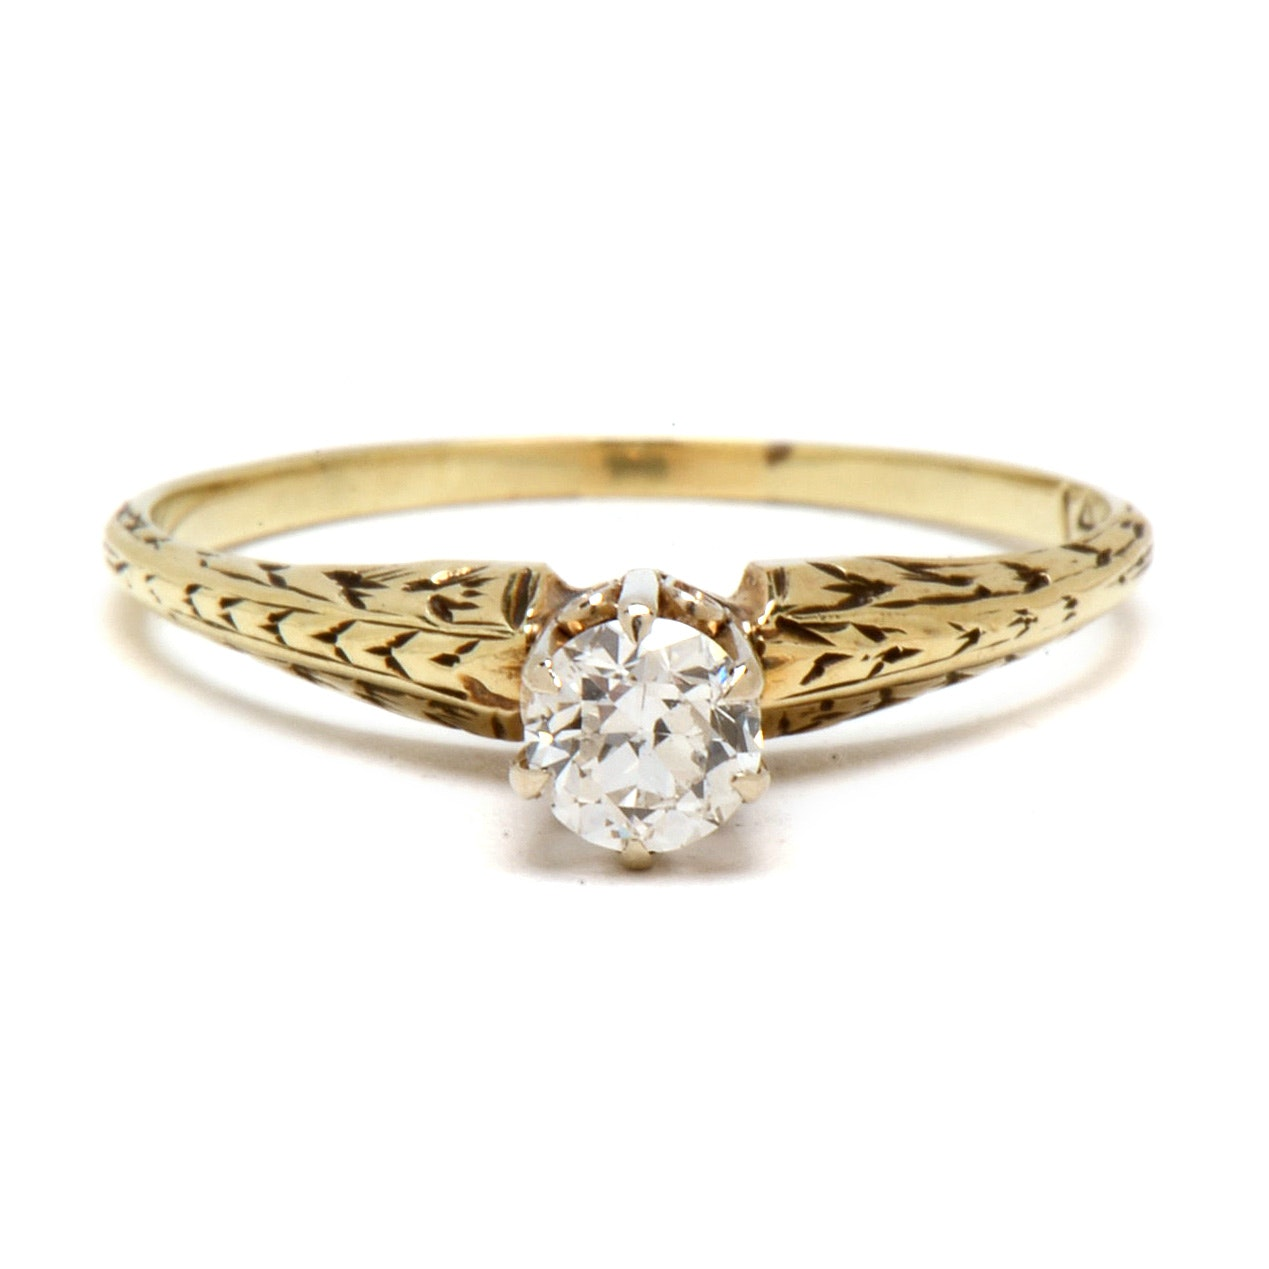 Vintage 14K Yellow Gold Diamond Solitaire Ring with Engraving